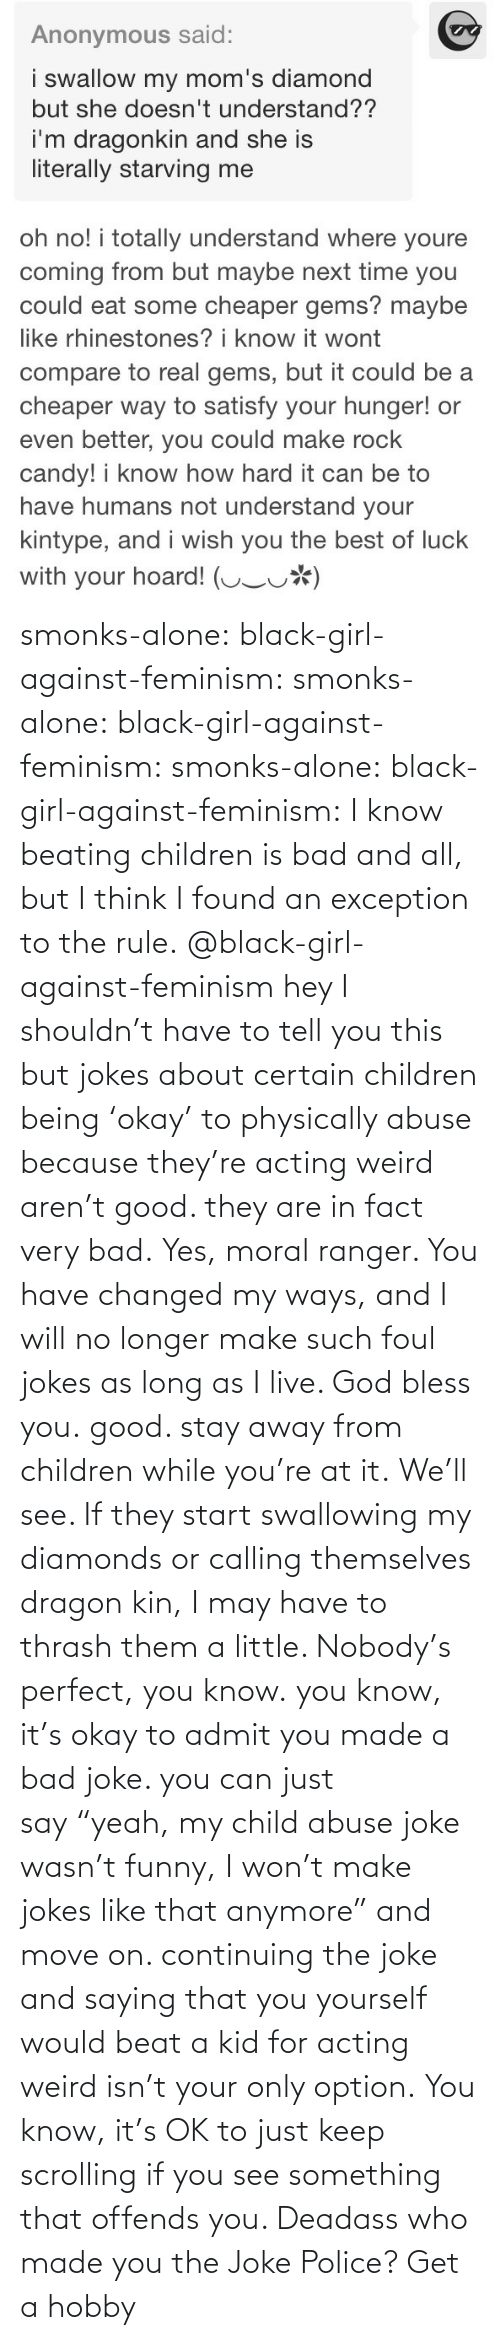 "to-tell-you: smonks-alone:  black-girl-against-feminism: smonks-alone:  black-girl-against-feminism:  smonks-alone:  black-girl-against-feminism: I know beating children is bad and all, but I think I found an exception to the rule. @black-girl-against-feminism hey I shouldn't have to tell you this but jokes about certain children being 'okay' to physically abuse because they're acting weird aren't good. they are in fact very bad.  Yes, moral ranger. You have changed my ways, and I will no longer make such foul jokes as long as I live. God bless you.  good. stay away from children while you're at it.  We'll see. If they start swallowing my diamonds or calling themselves dragon kin, I may have to thrash them a little. Nobody's perfect, you know.  you know, it's okay to admit you made a bad joke. you can just say ""yeah, my child abuse joke wasn't funny, I won't make jokes like that anymore"" and move on. continuing the joke and saying that you yourself would beat a kid for acting weird isn't your only option.   You know, it's OK to just keep scrolling if you see something that offends you. Deadass who made you the Joke Police? Get a hobby"